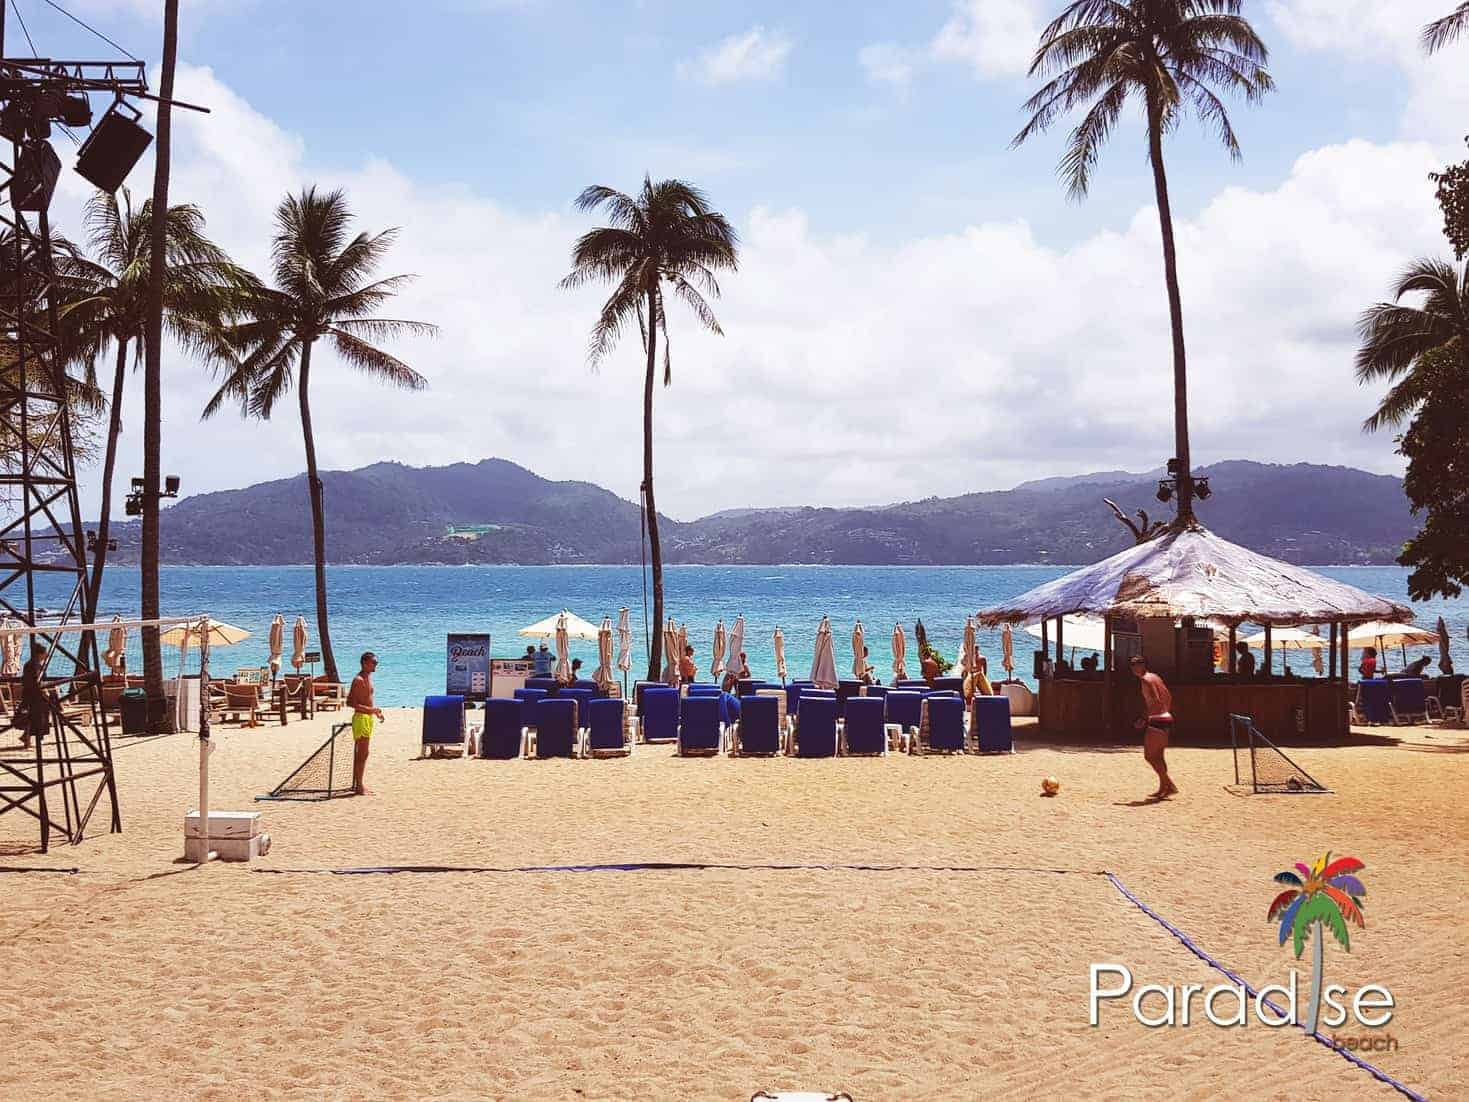 Sun, sea and sand - you can savor them all at Paradise Beach, Phuket, Thailand.